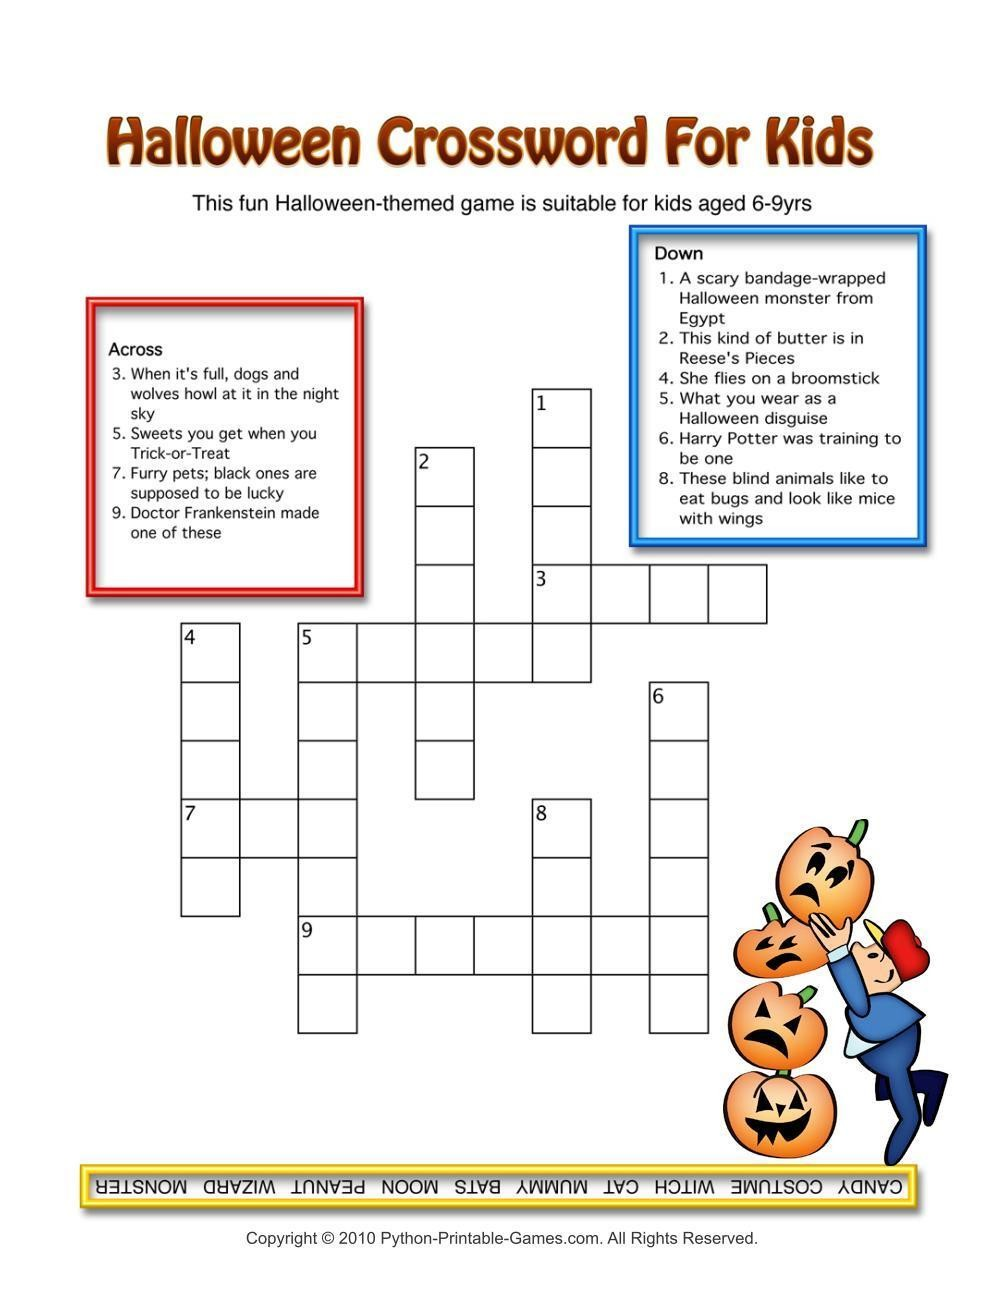 photograph regarding Halloween Crossword Puzzles Printable known as Halloween: 3 Crossword Puzzles